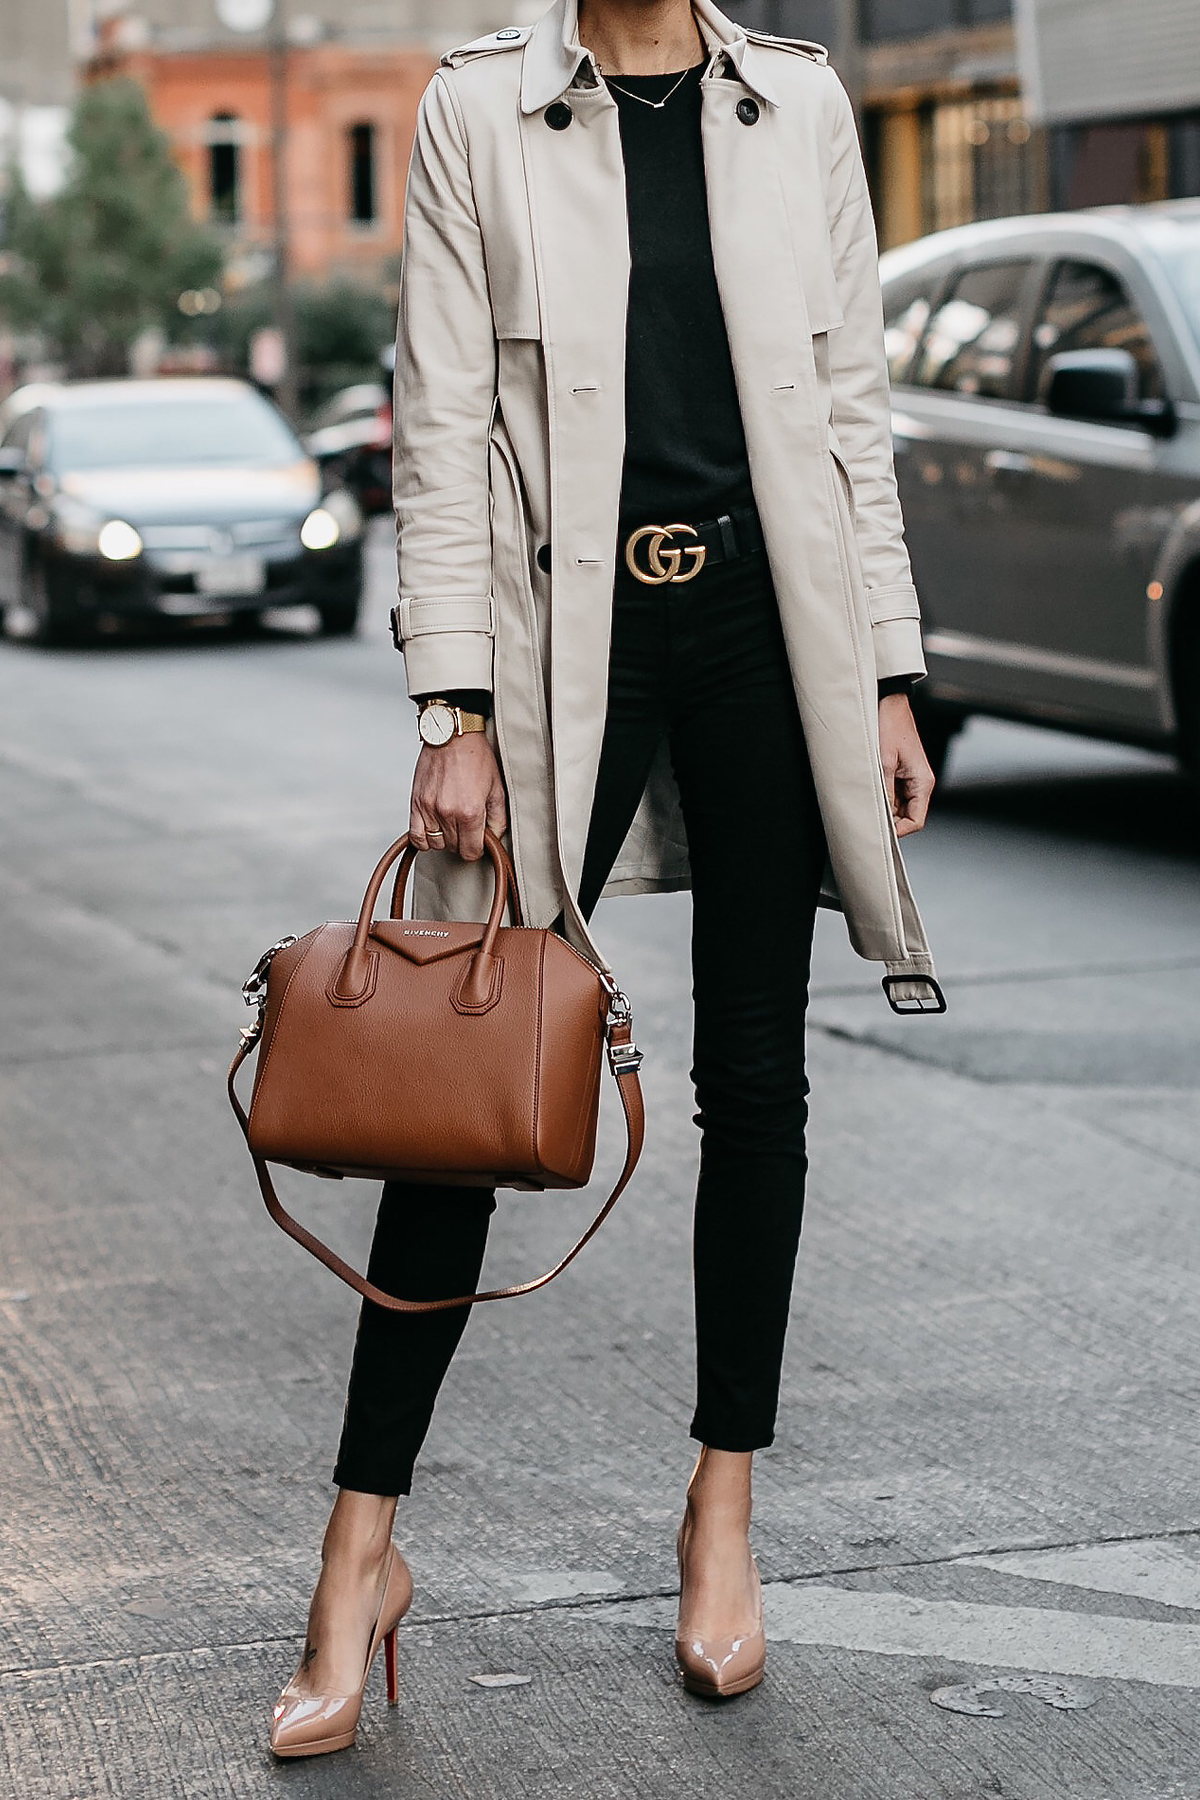 Club Monaco Trench Coat Black Sweater Black Skinny Jeans Gucci Marmont Belt Nude Pumps Givenchy Antigona Cognac Satchel Fashion Jackson Dallas Blogger Fashion Blogger Street Style